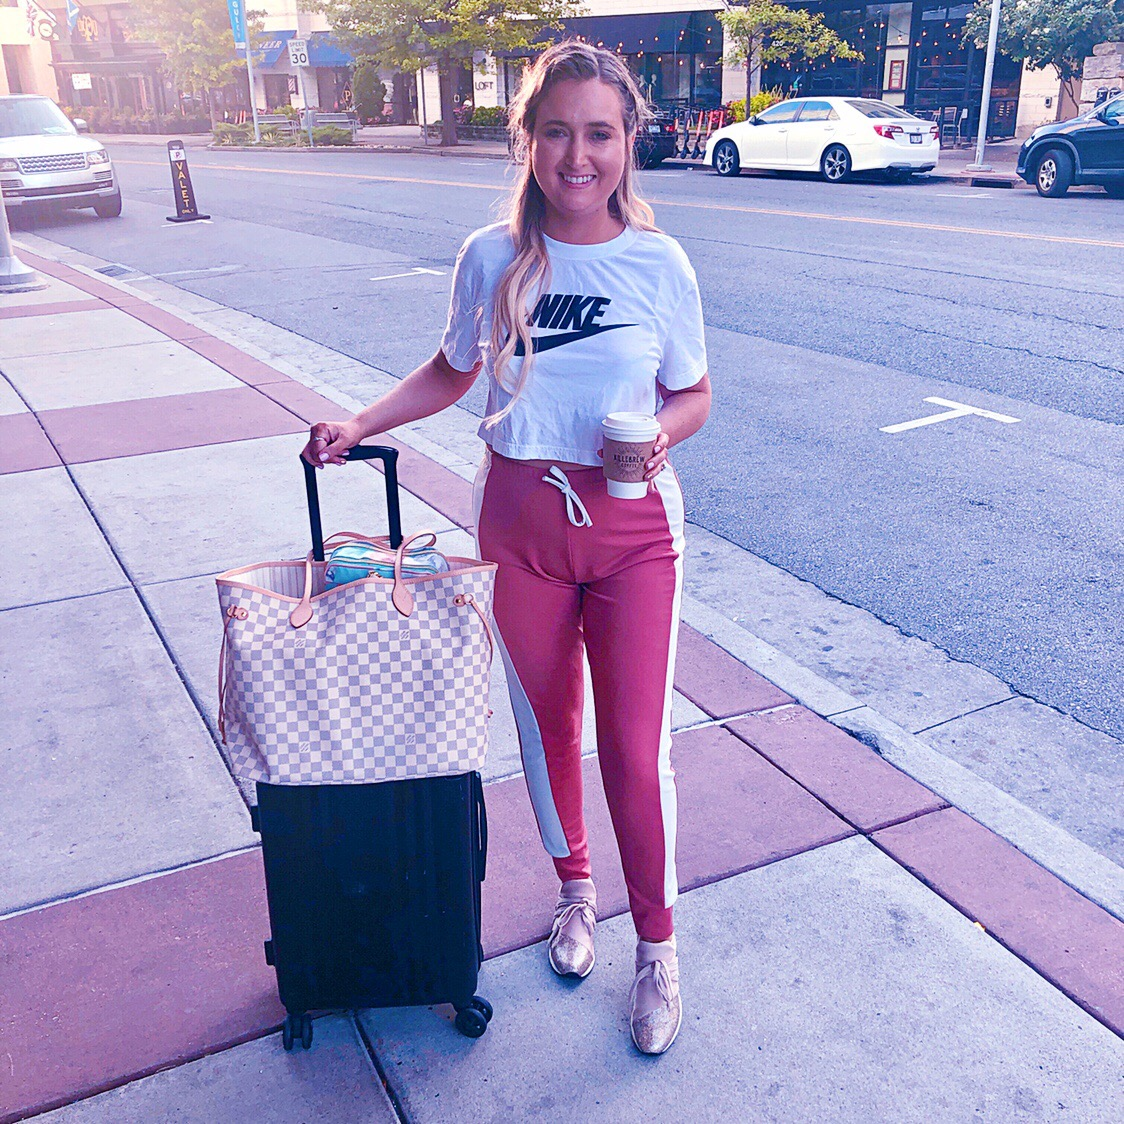 airport outfit, nashville airport outfit, jslides, j slides zorro sneakers, pink joggers, nike cropped top, calpak luggage, louis vuitton neverfull gm damier azur